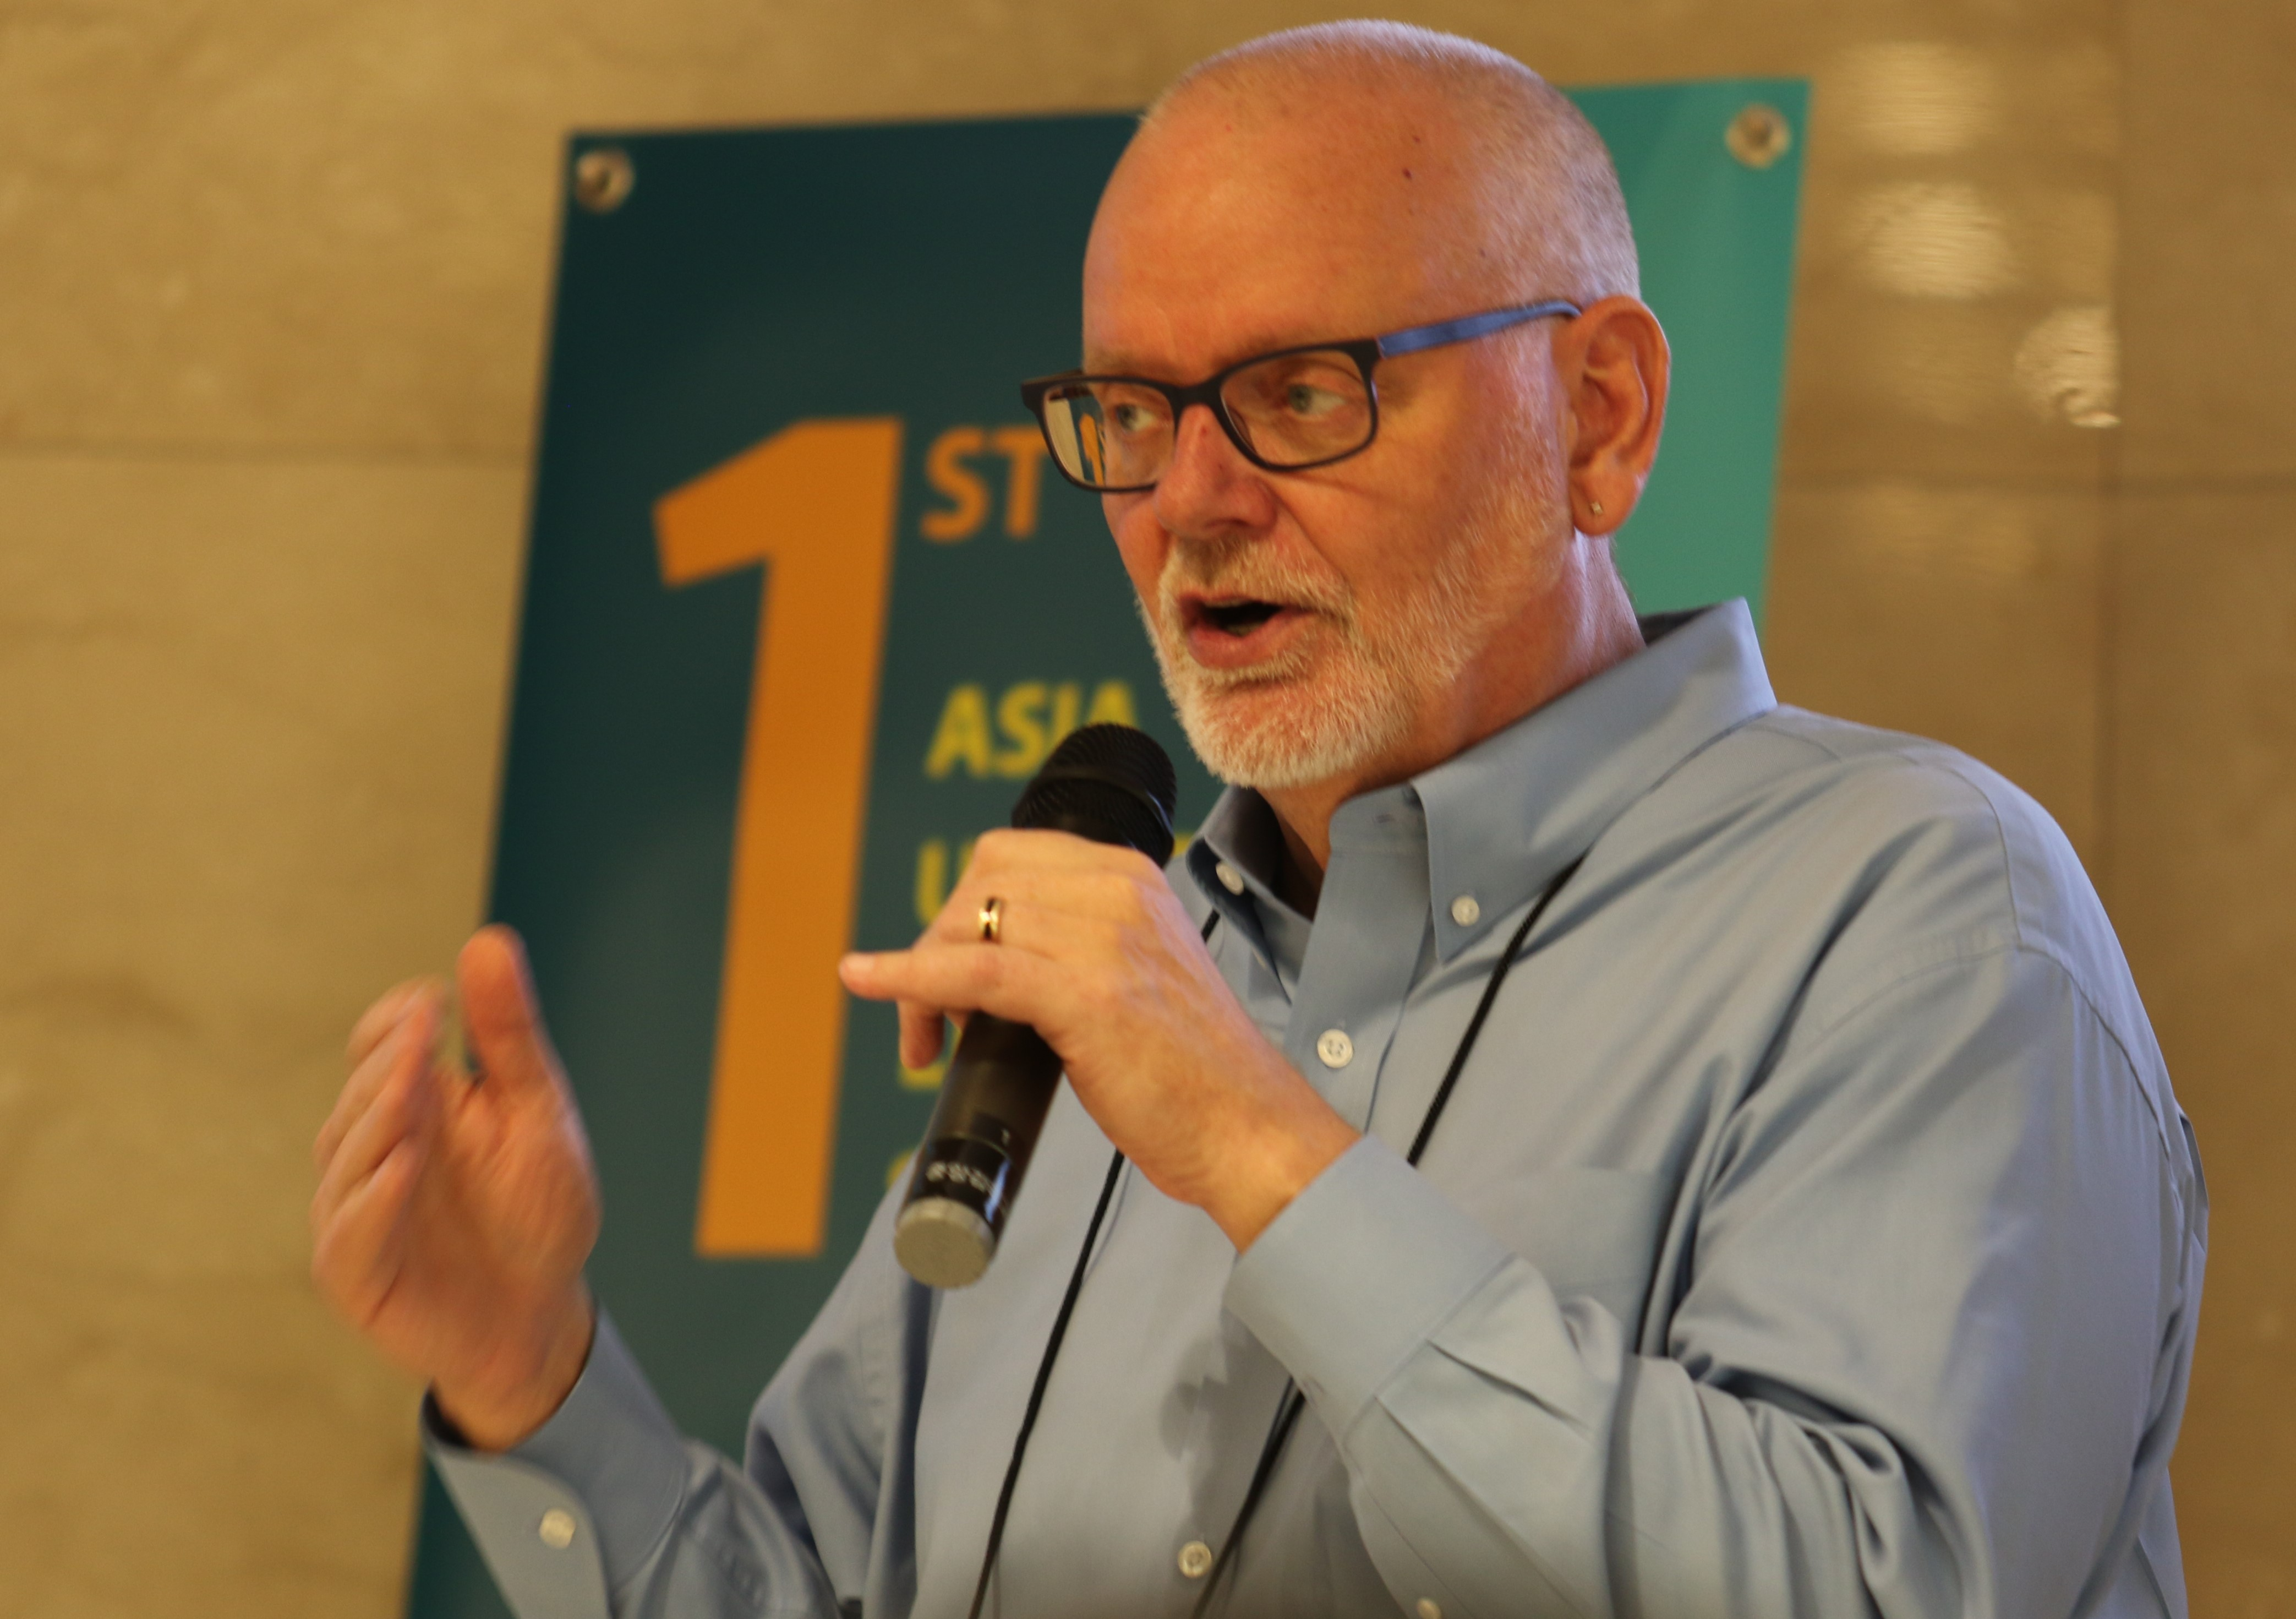 Peter Velander of The Upper Room Ministry gives a lecture during the seminar, Photo by Thomas Kim, UMNS